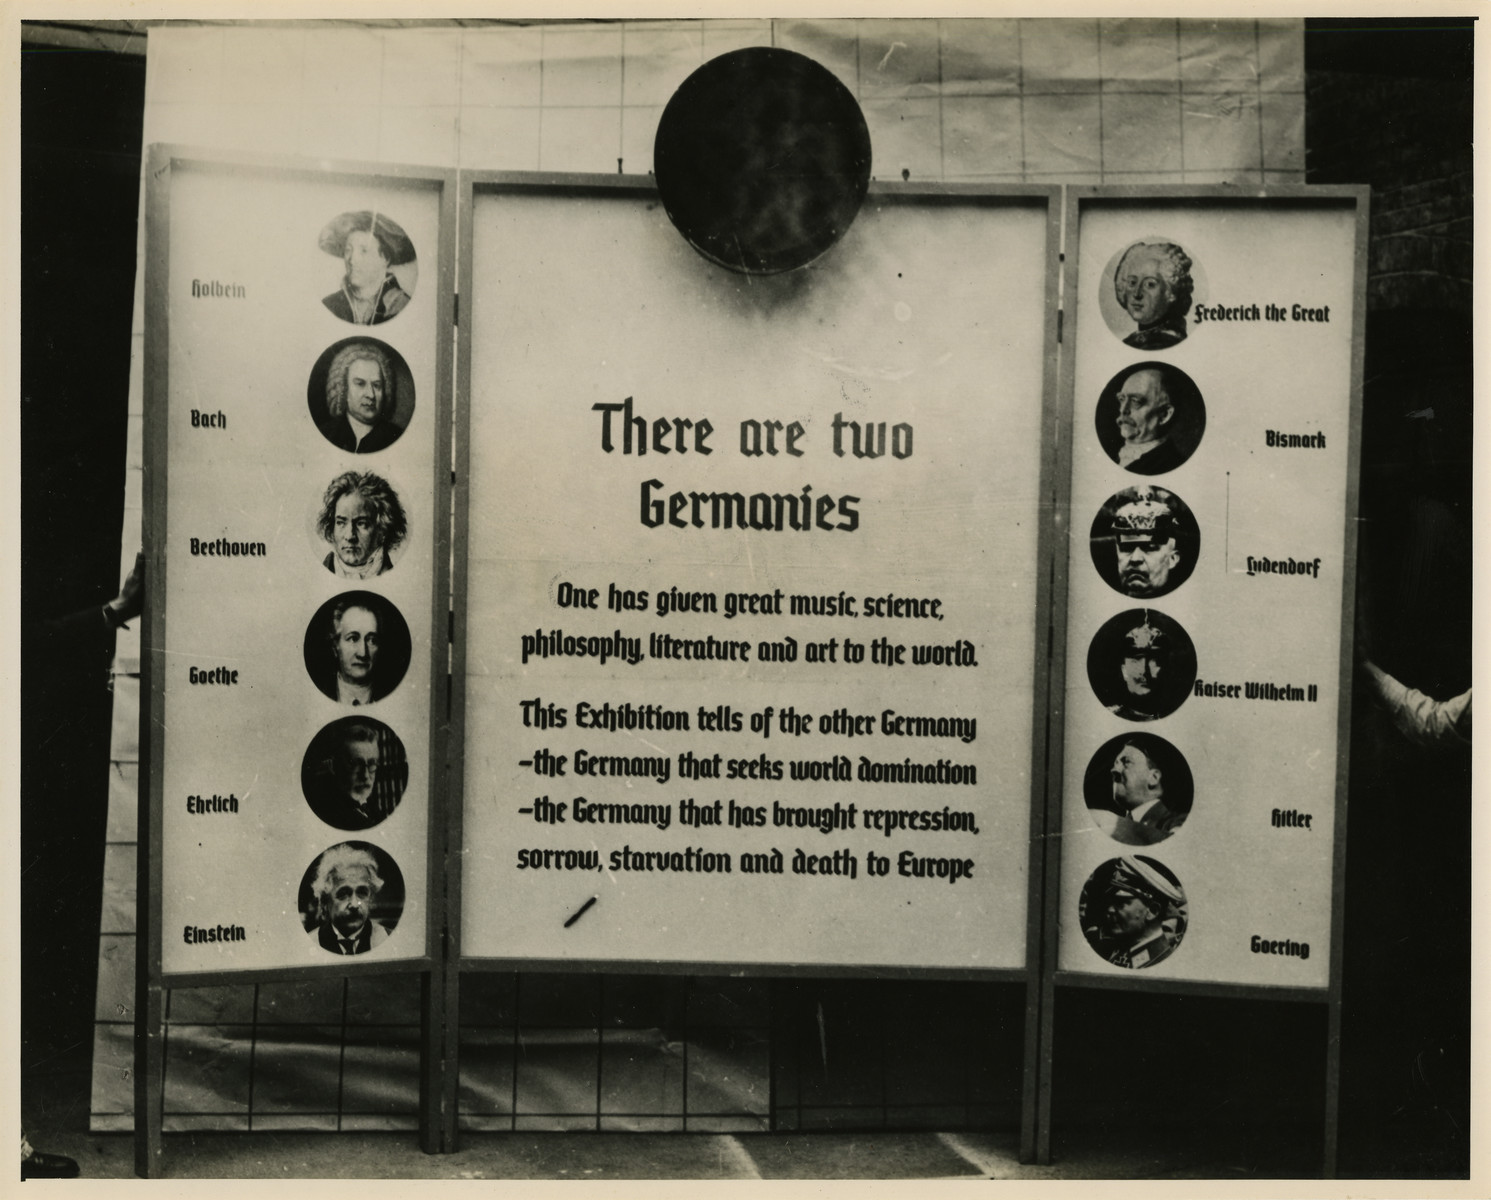 "Panel from a 1944 exhibition in London, England, entitled ""Germany- the Evidence"" showing 'Two Germanies.'  The panel reads ""There Are Two Germanies: One has given great music, science, philosphy, literature, and art to the world. The Exhibition tells of the other Germany: the Germany that seeks world domination; the Germany that has brought repression, sorrow, starvation, and death to Europe."" The left panel of the tryptich lists: Holhein, Back, Beethoven, Goehte, Ehrlich, and Einstein. The right panel lists: Frederich the Great, Bismark, Ludendorf, Kaiser Wilhelm II, Hitler, and Goering.   The back of the photo reads ""British Official Photograph; Distrbuted by the Ministry of Information. D. ; The Evil We Fight.; Ministry of Information Exhibition priduced by Display &Exhibitions Division for show all over Great Britain.; Display panel"""